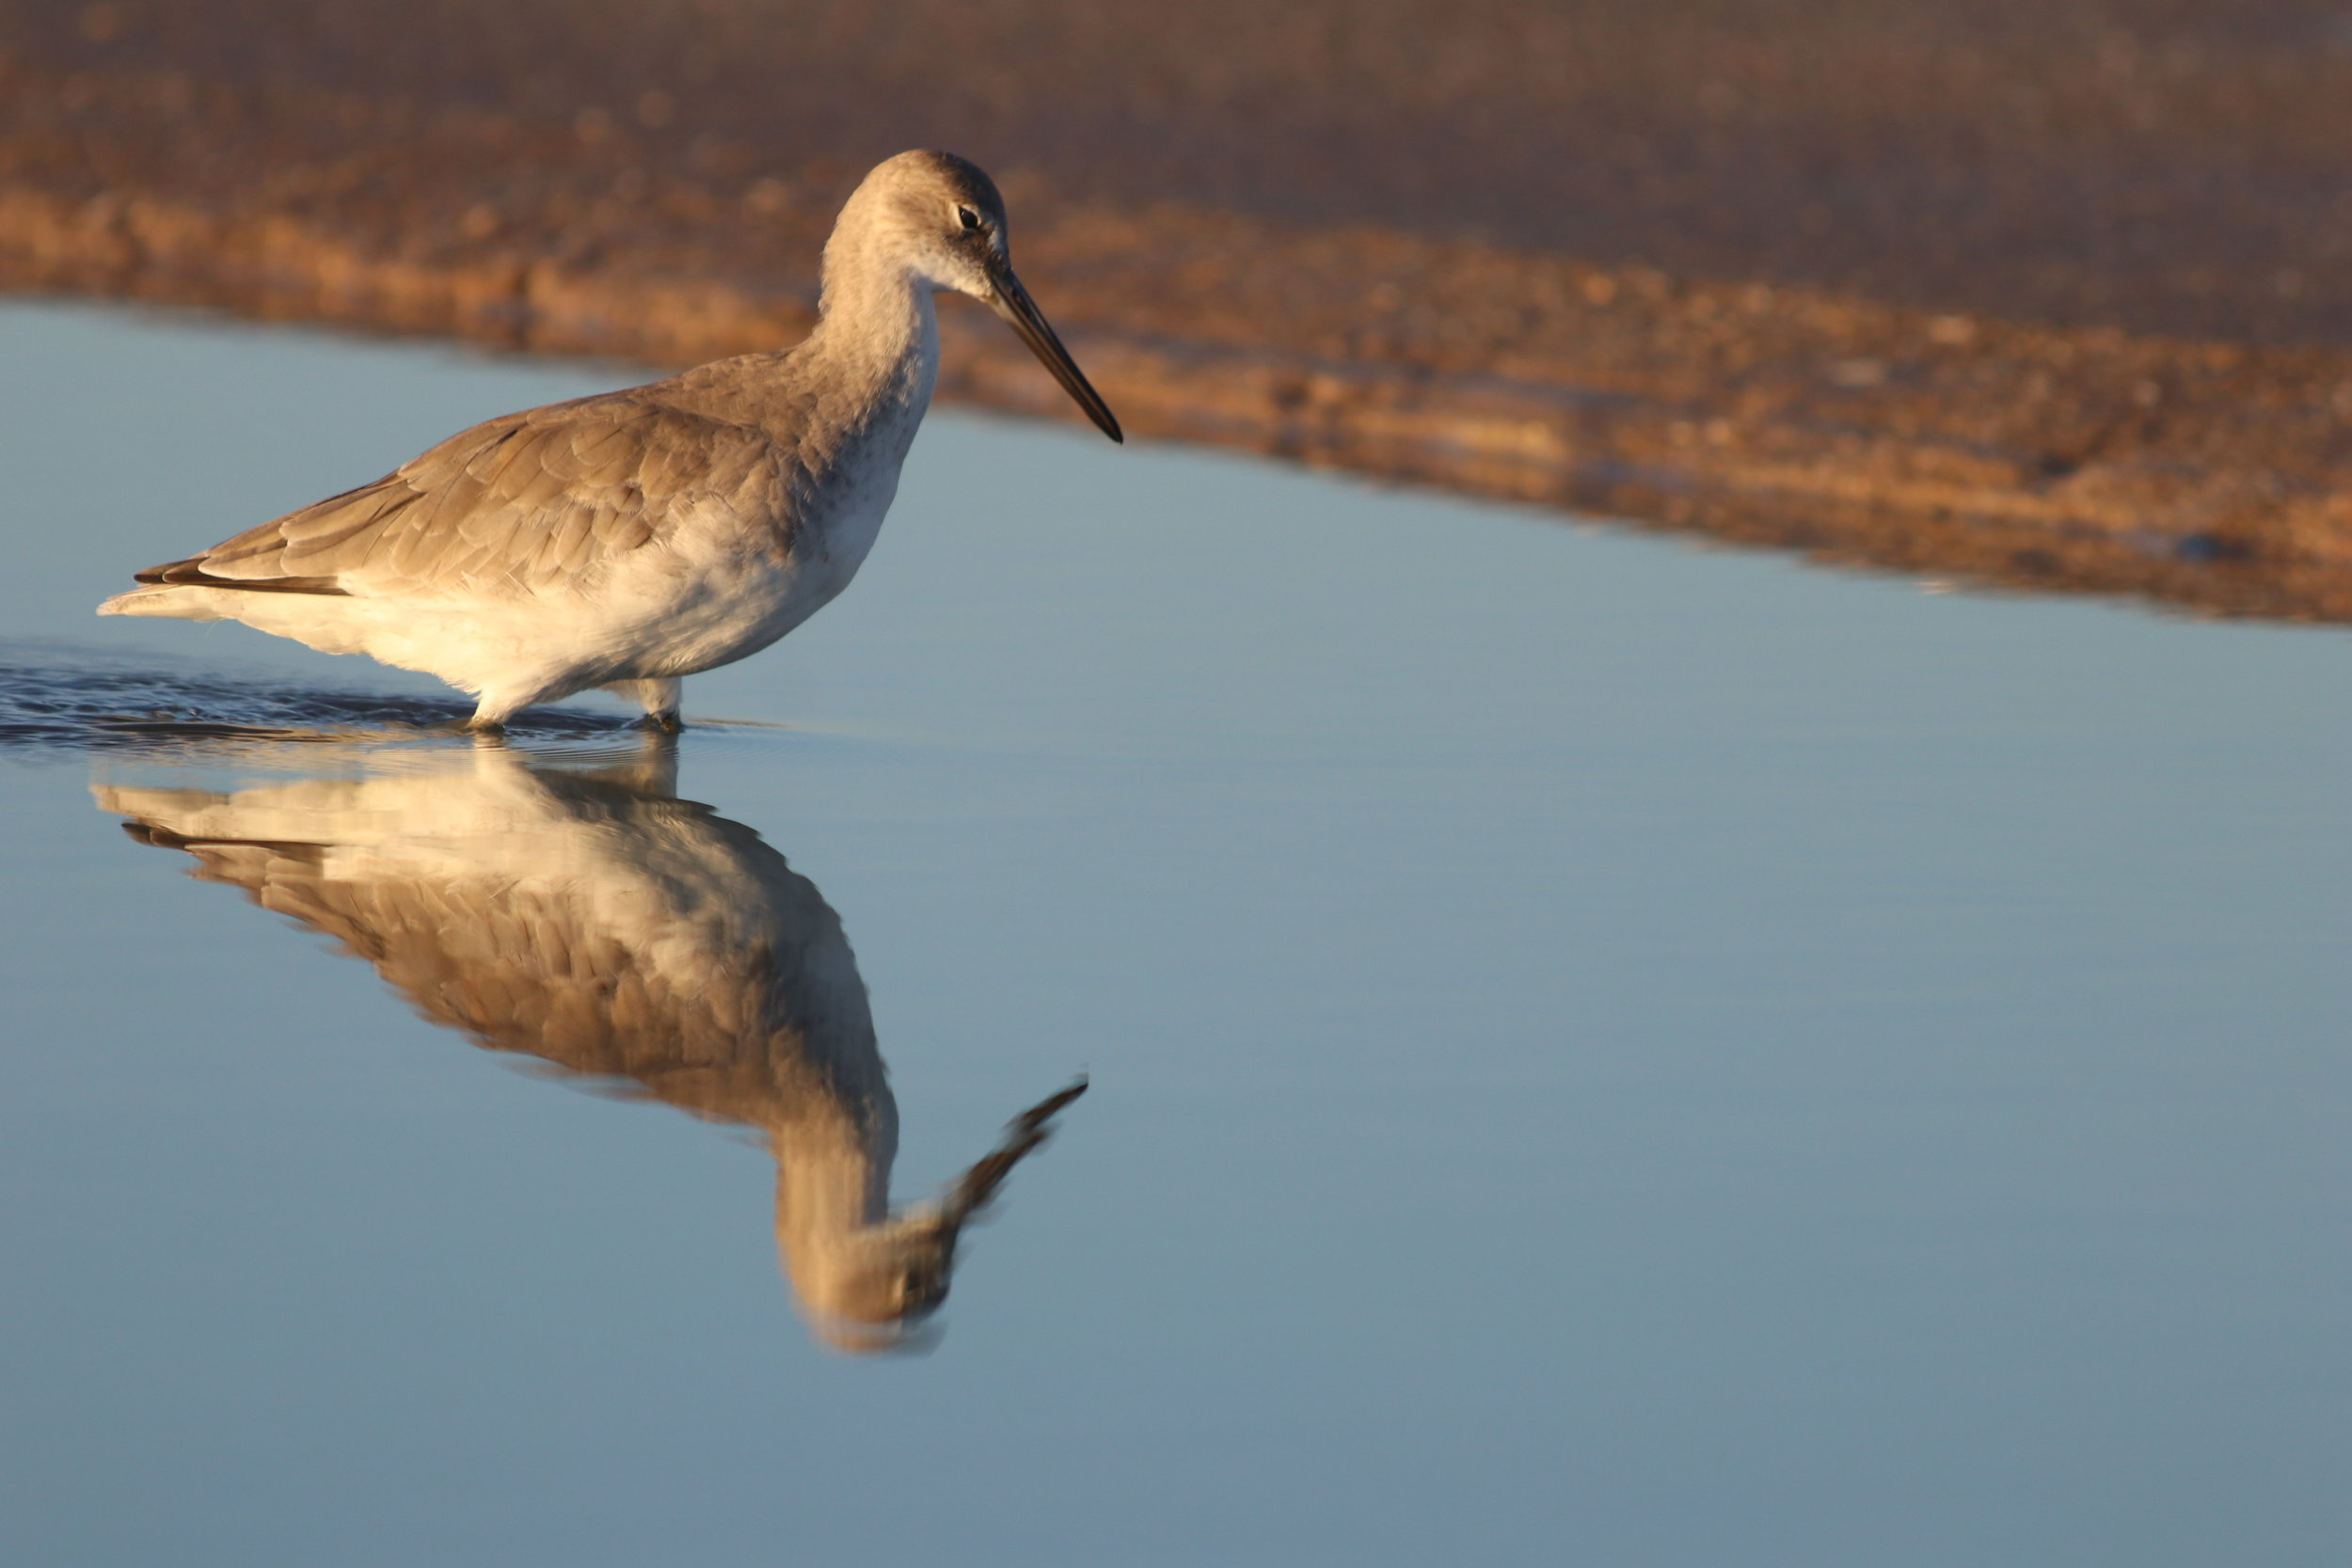 Serene Willy the Willet